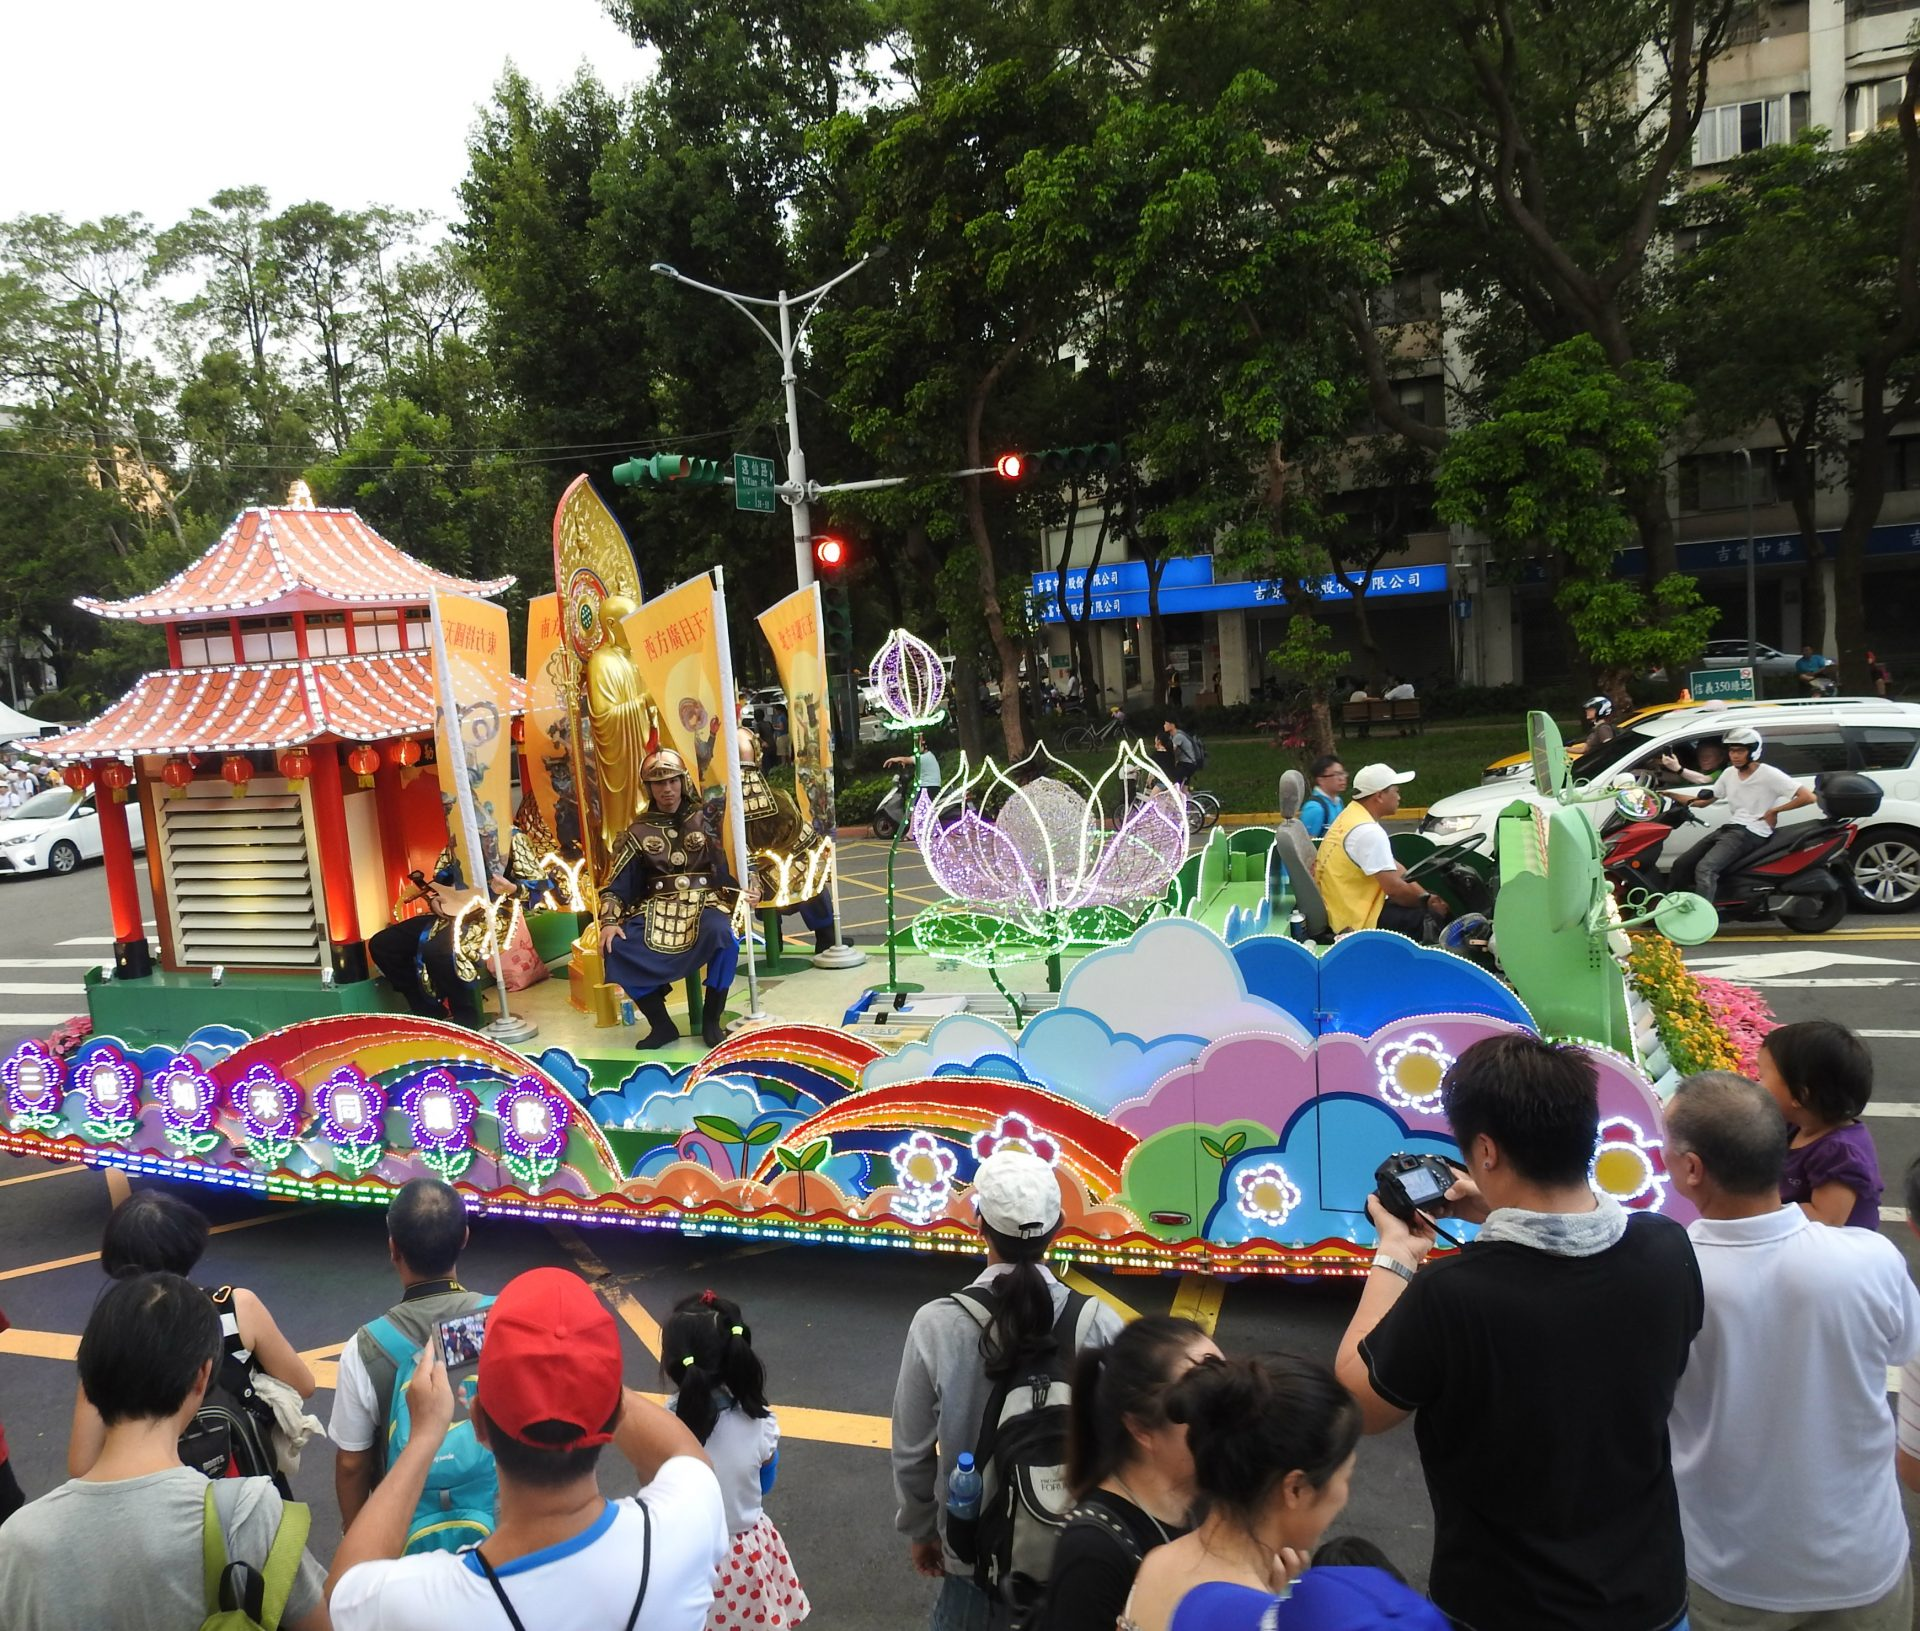 A float provided a civic association at the grand parade promoting the 2017 Summer Universiade in Taiwan (Image: Billy Shyu)